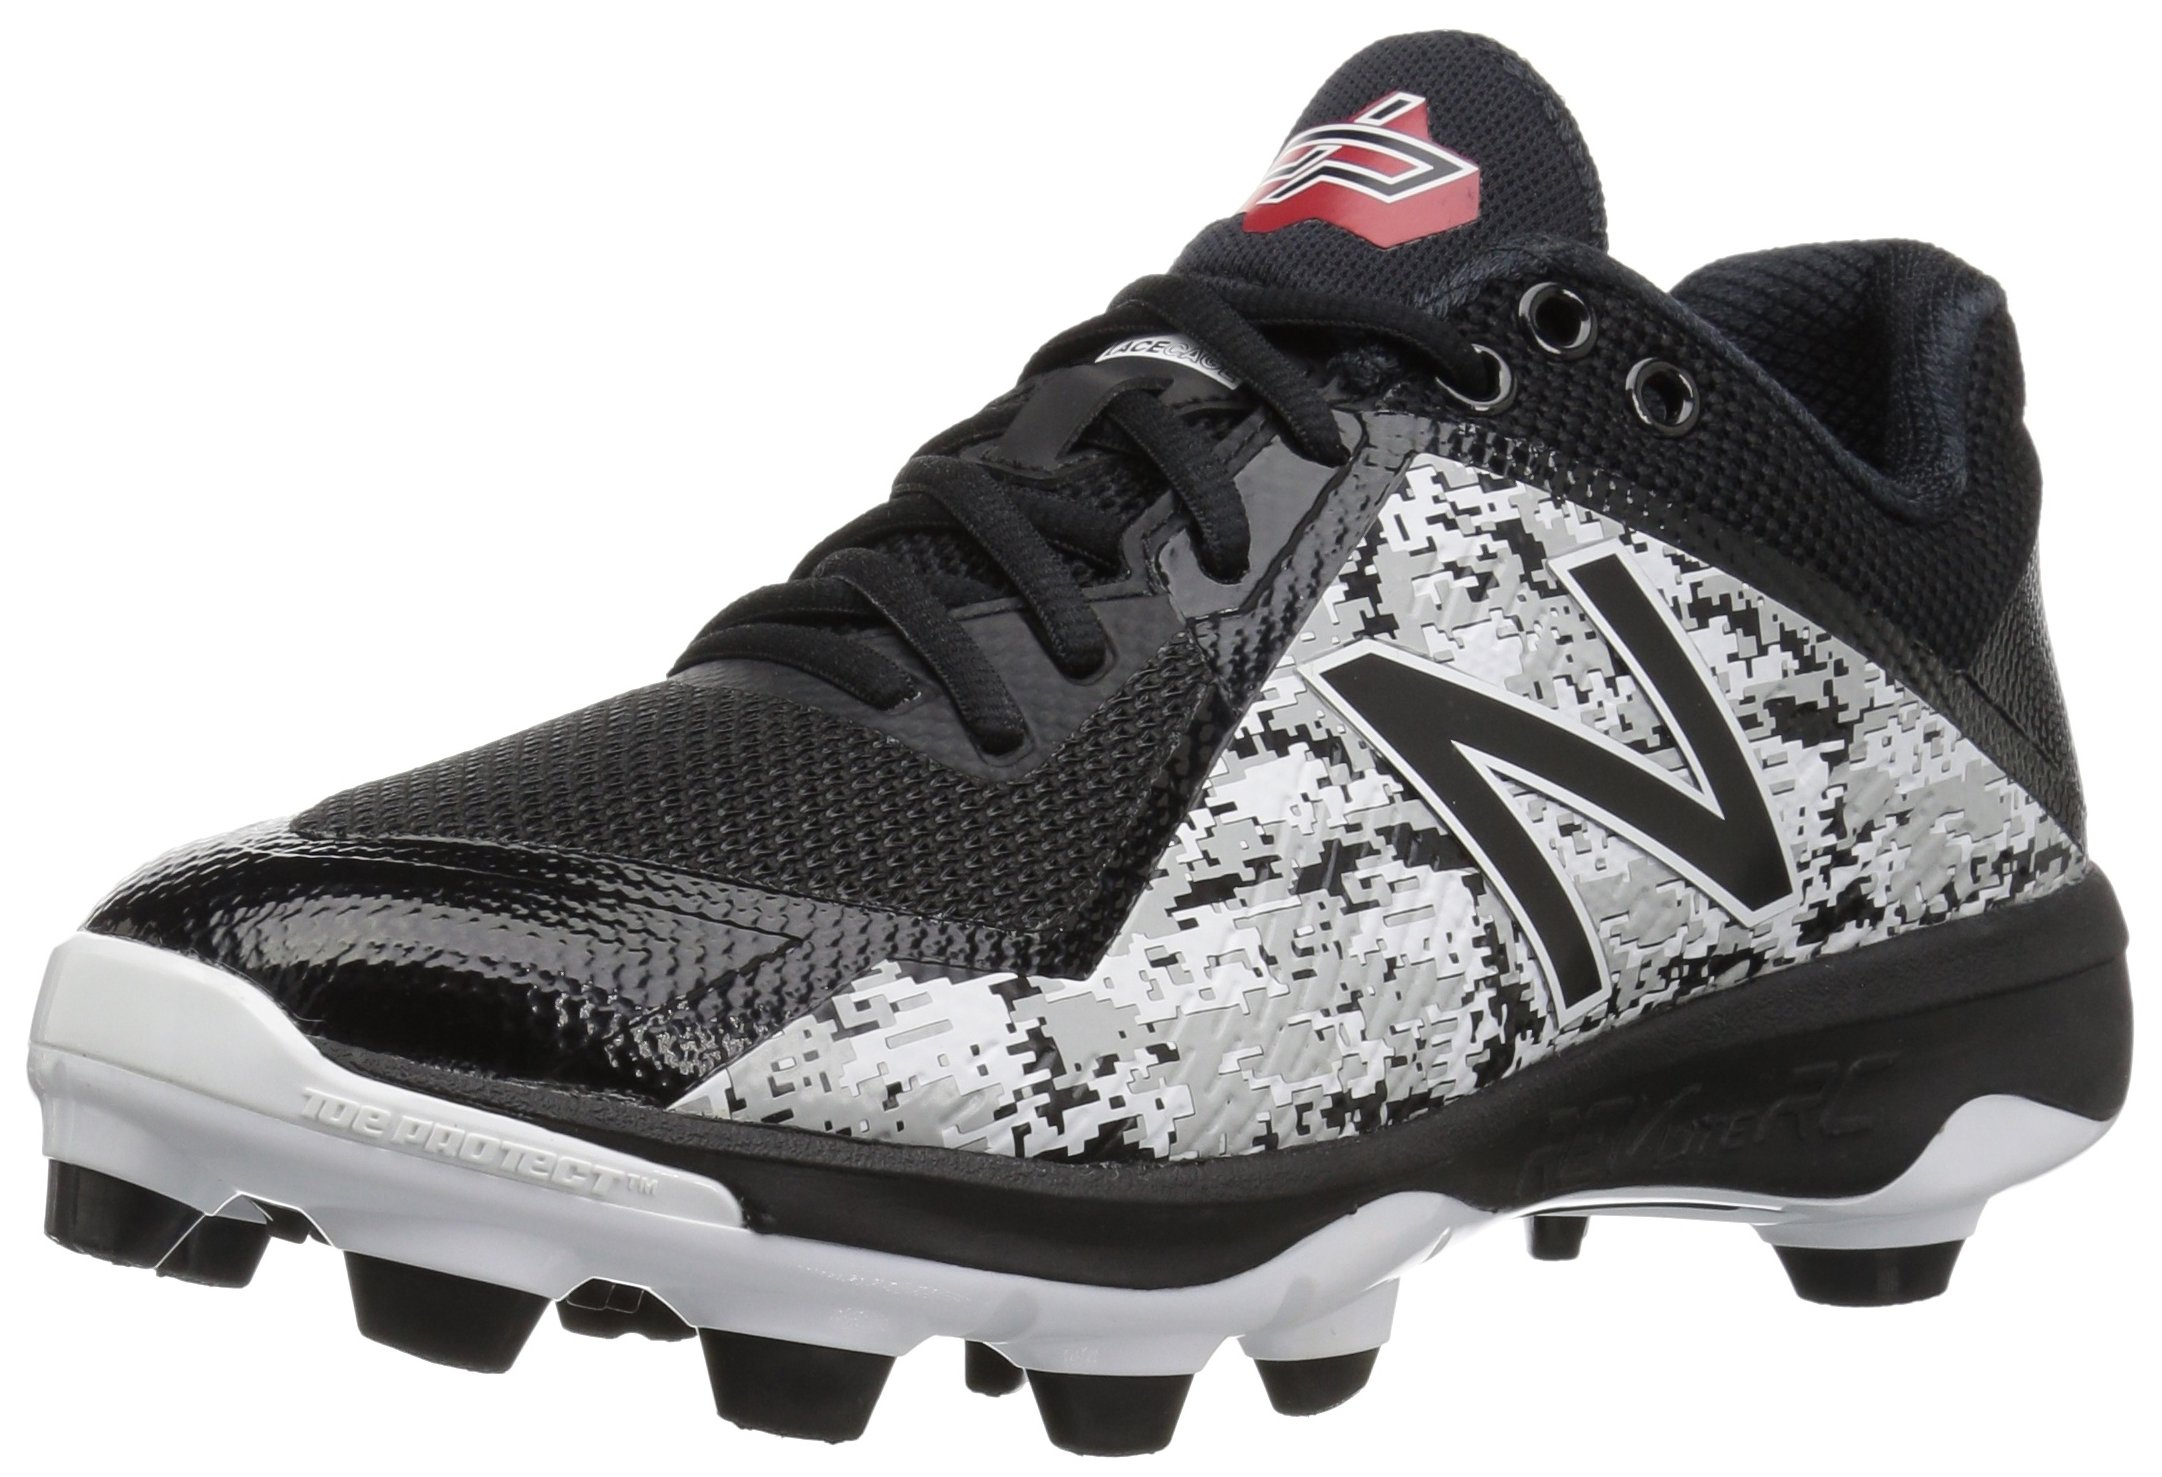 New Balance Men's PL4040v4 Molded Baseball Shoe, Black Camo by New Balance